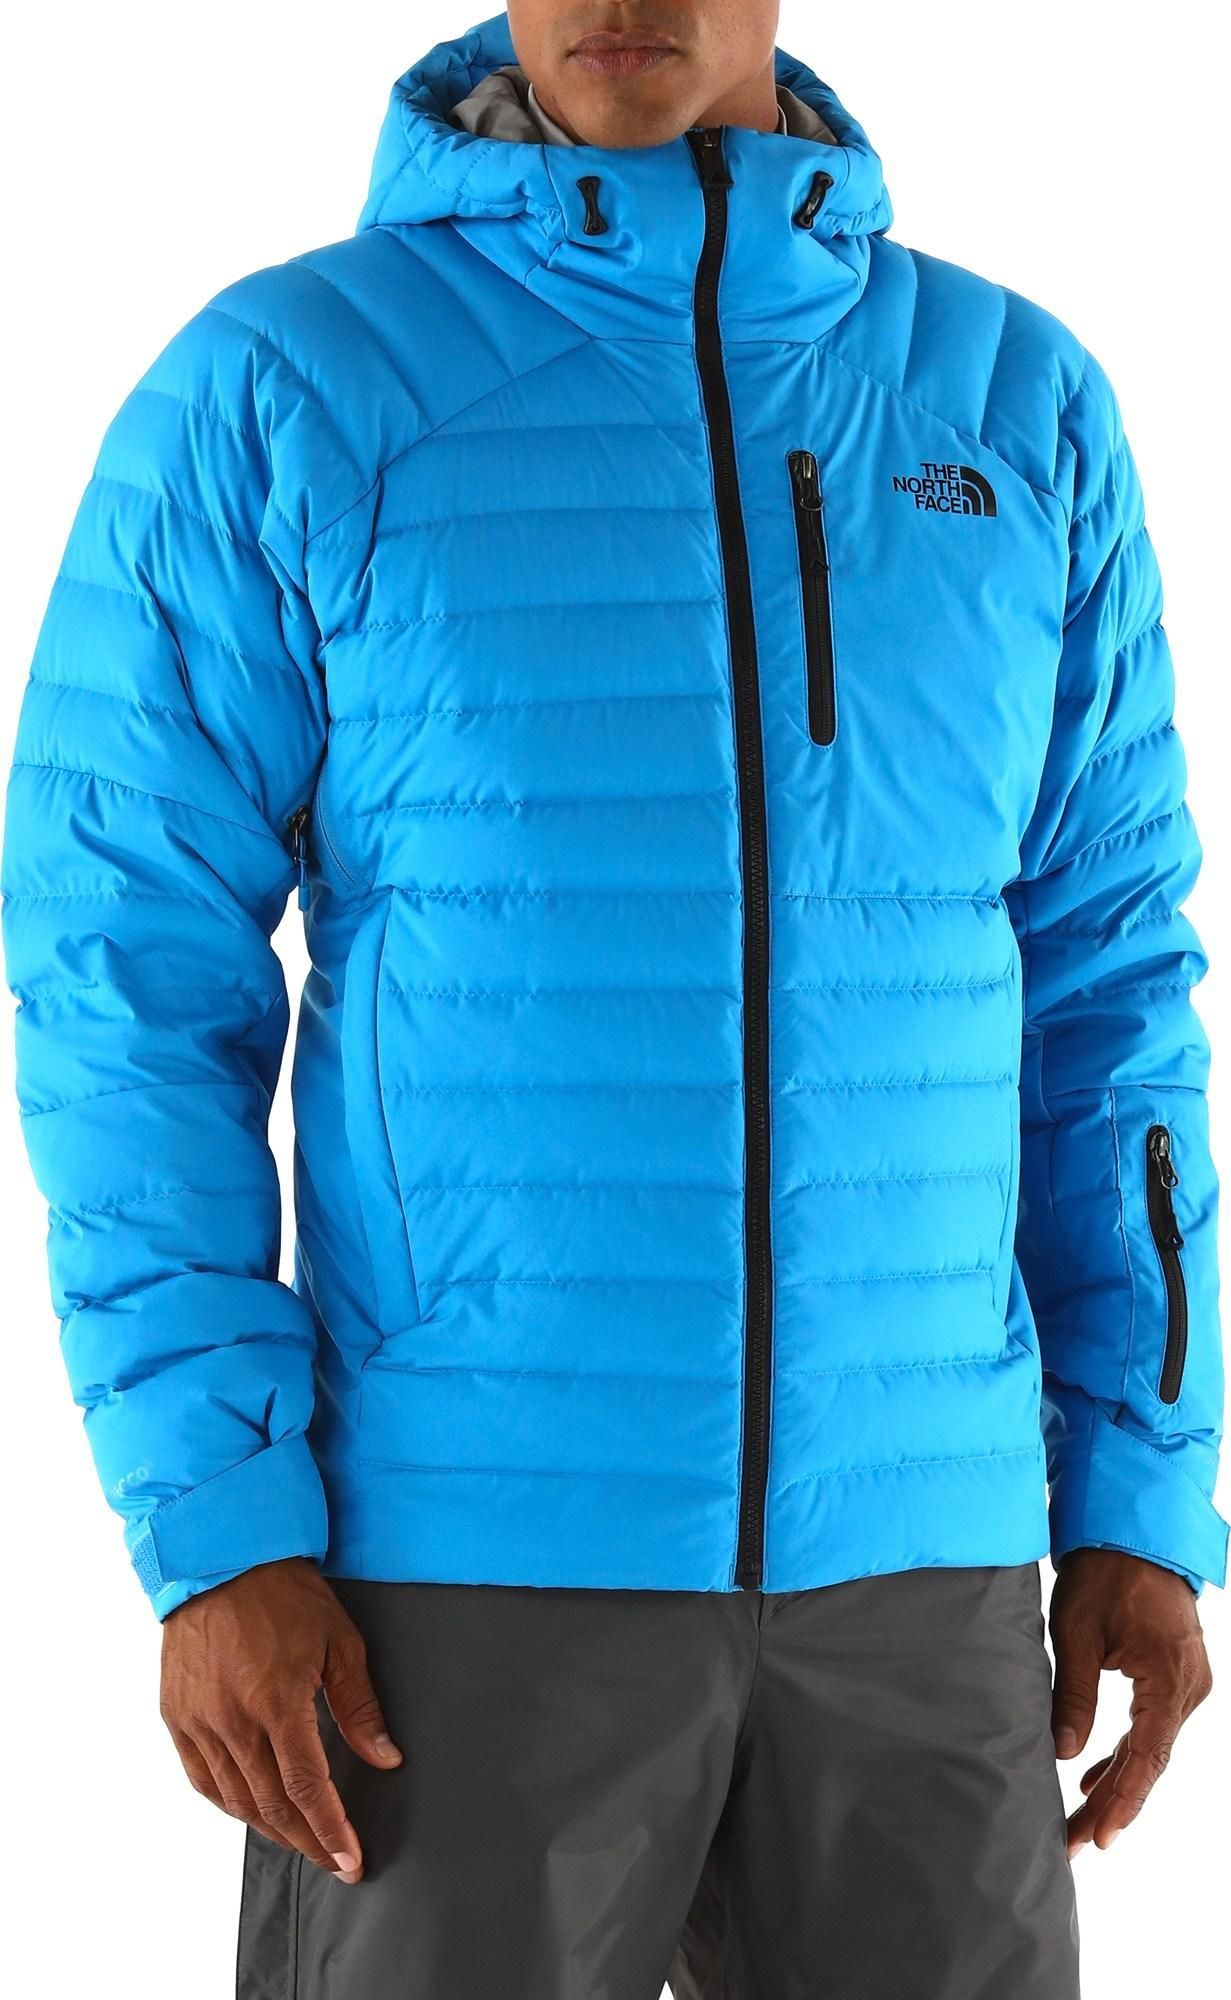 Mens jacket light blue - Built For Alaska Level Cold The North Face Point It Down Jacket Boasts A